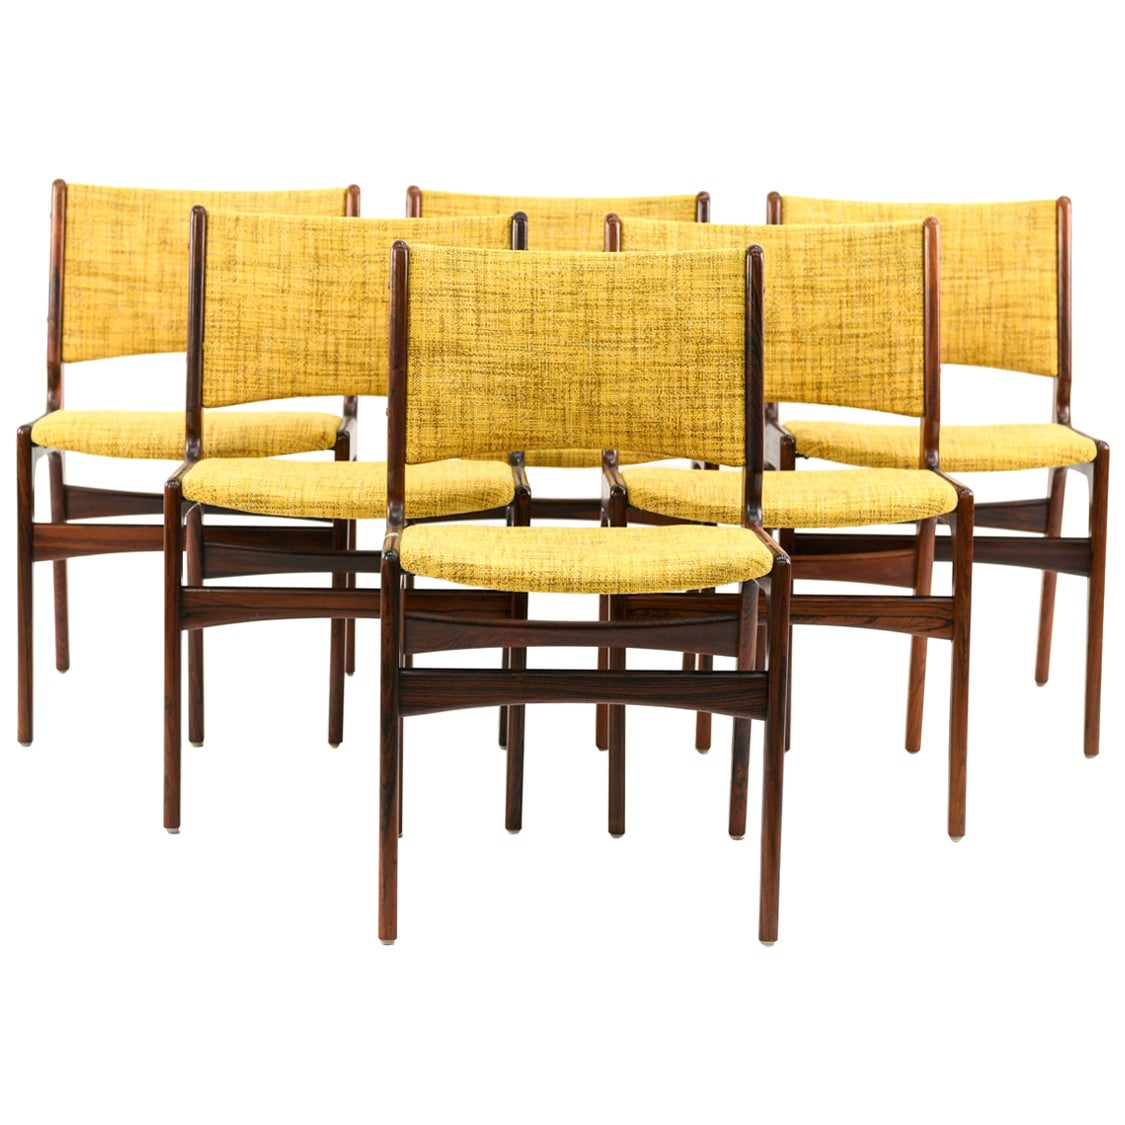 Set of Six Danish Midcentury Dining Chairs by Erik Buck for Odense